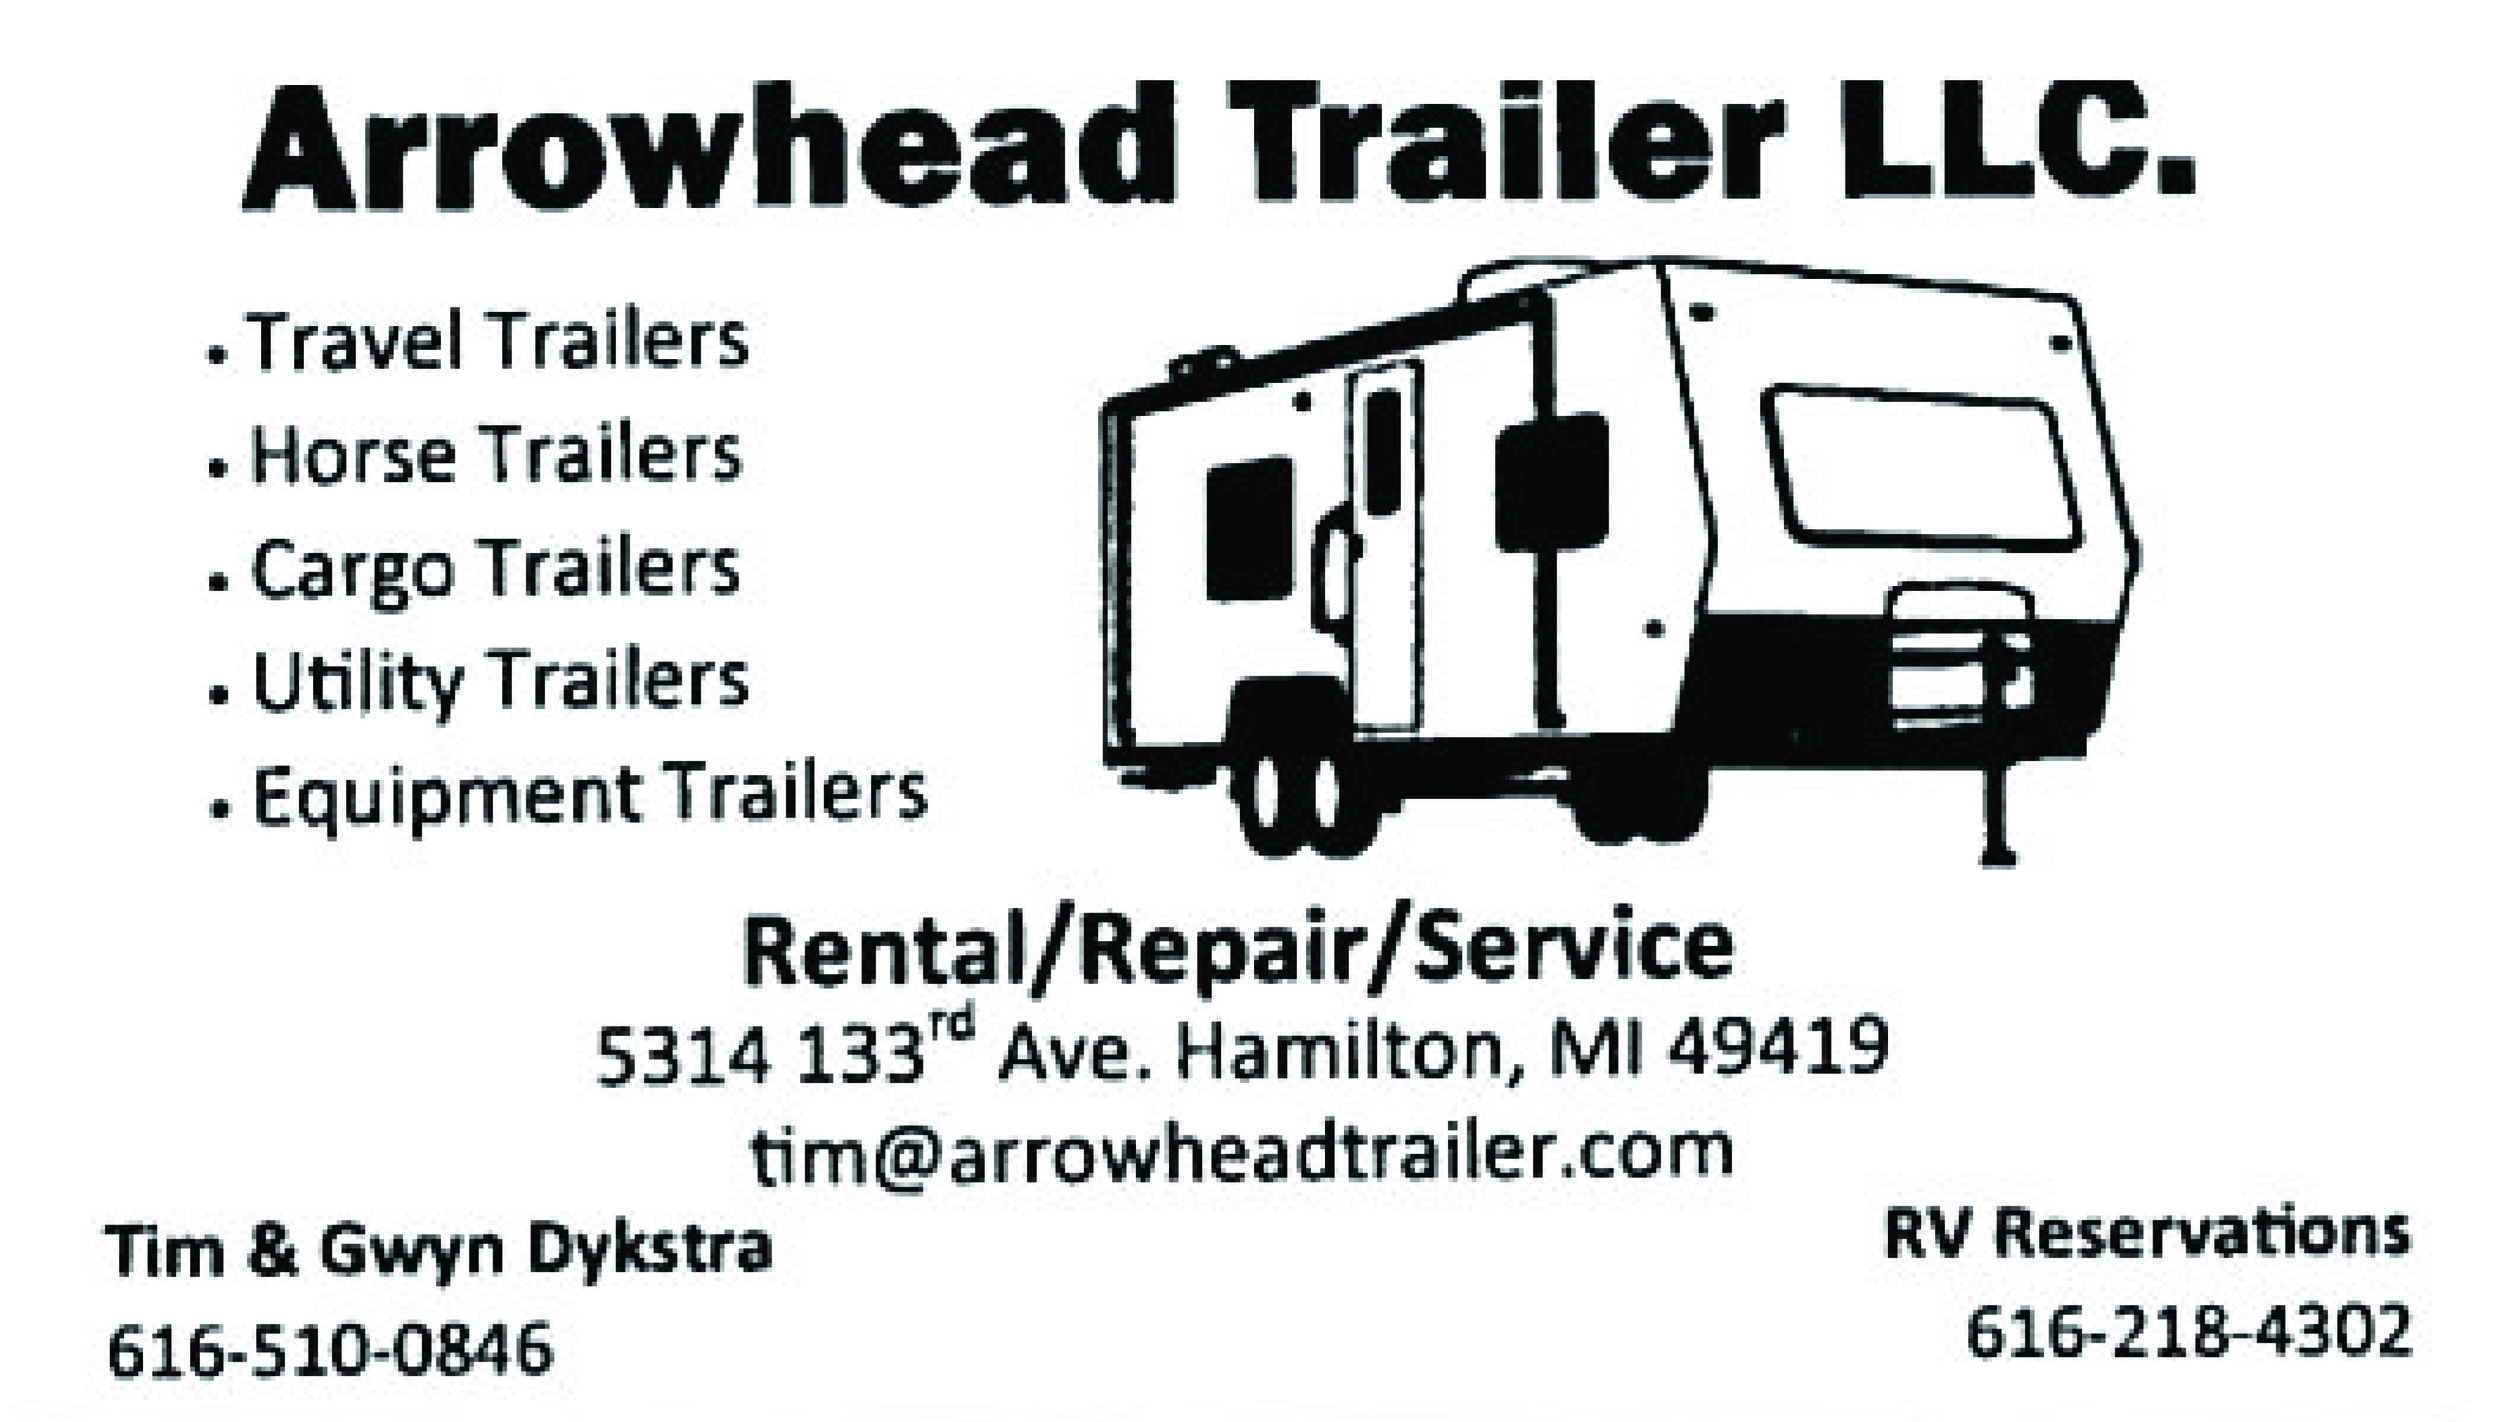 Horse trailer rental, repair, reconditioning and acid washing. We can even fix you up with new tires.  go to  arrowheadtrailer.com  to see our complete rental fleet.